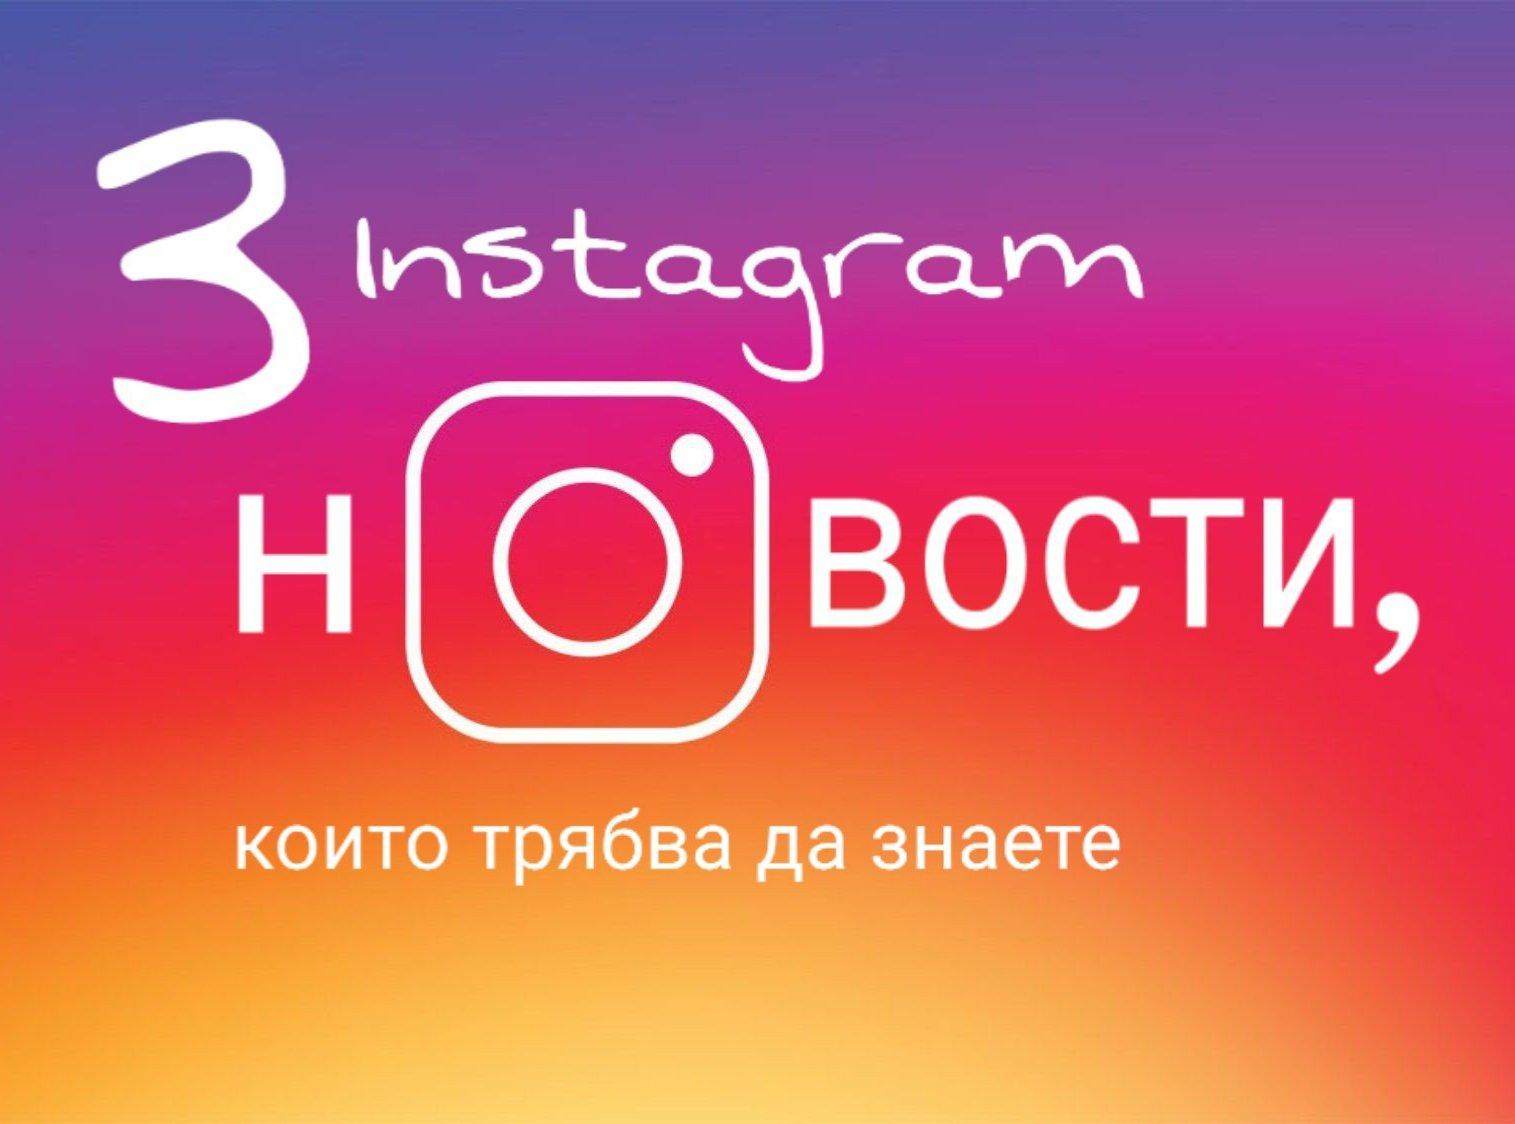 3 Instagram updates you should know